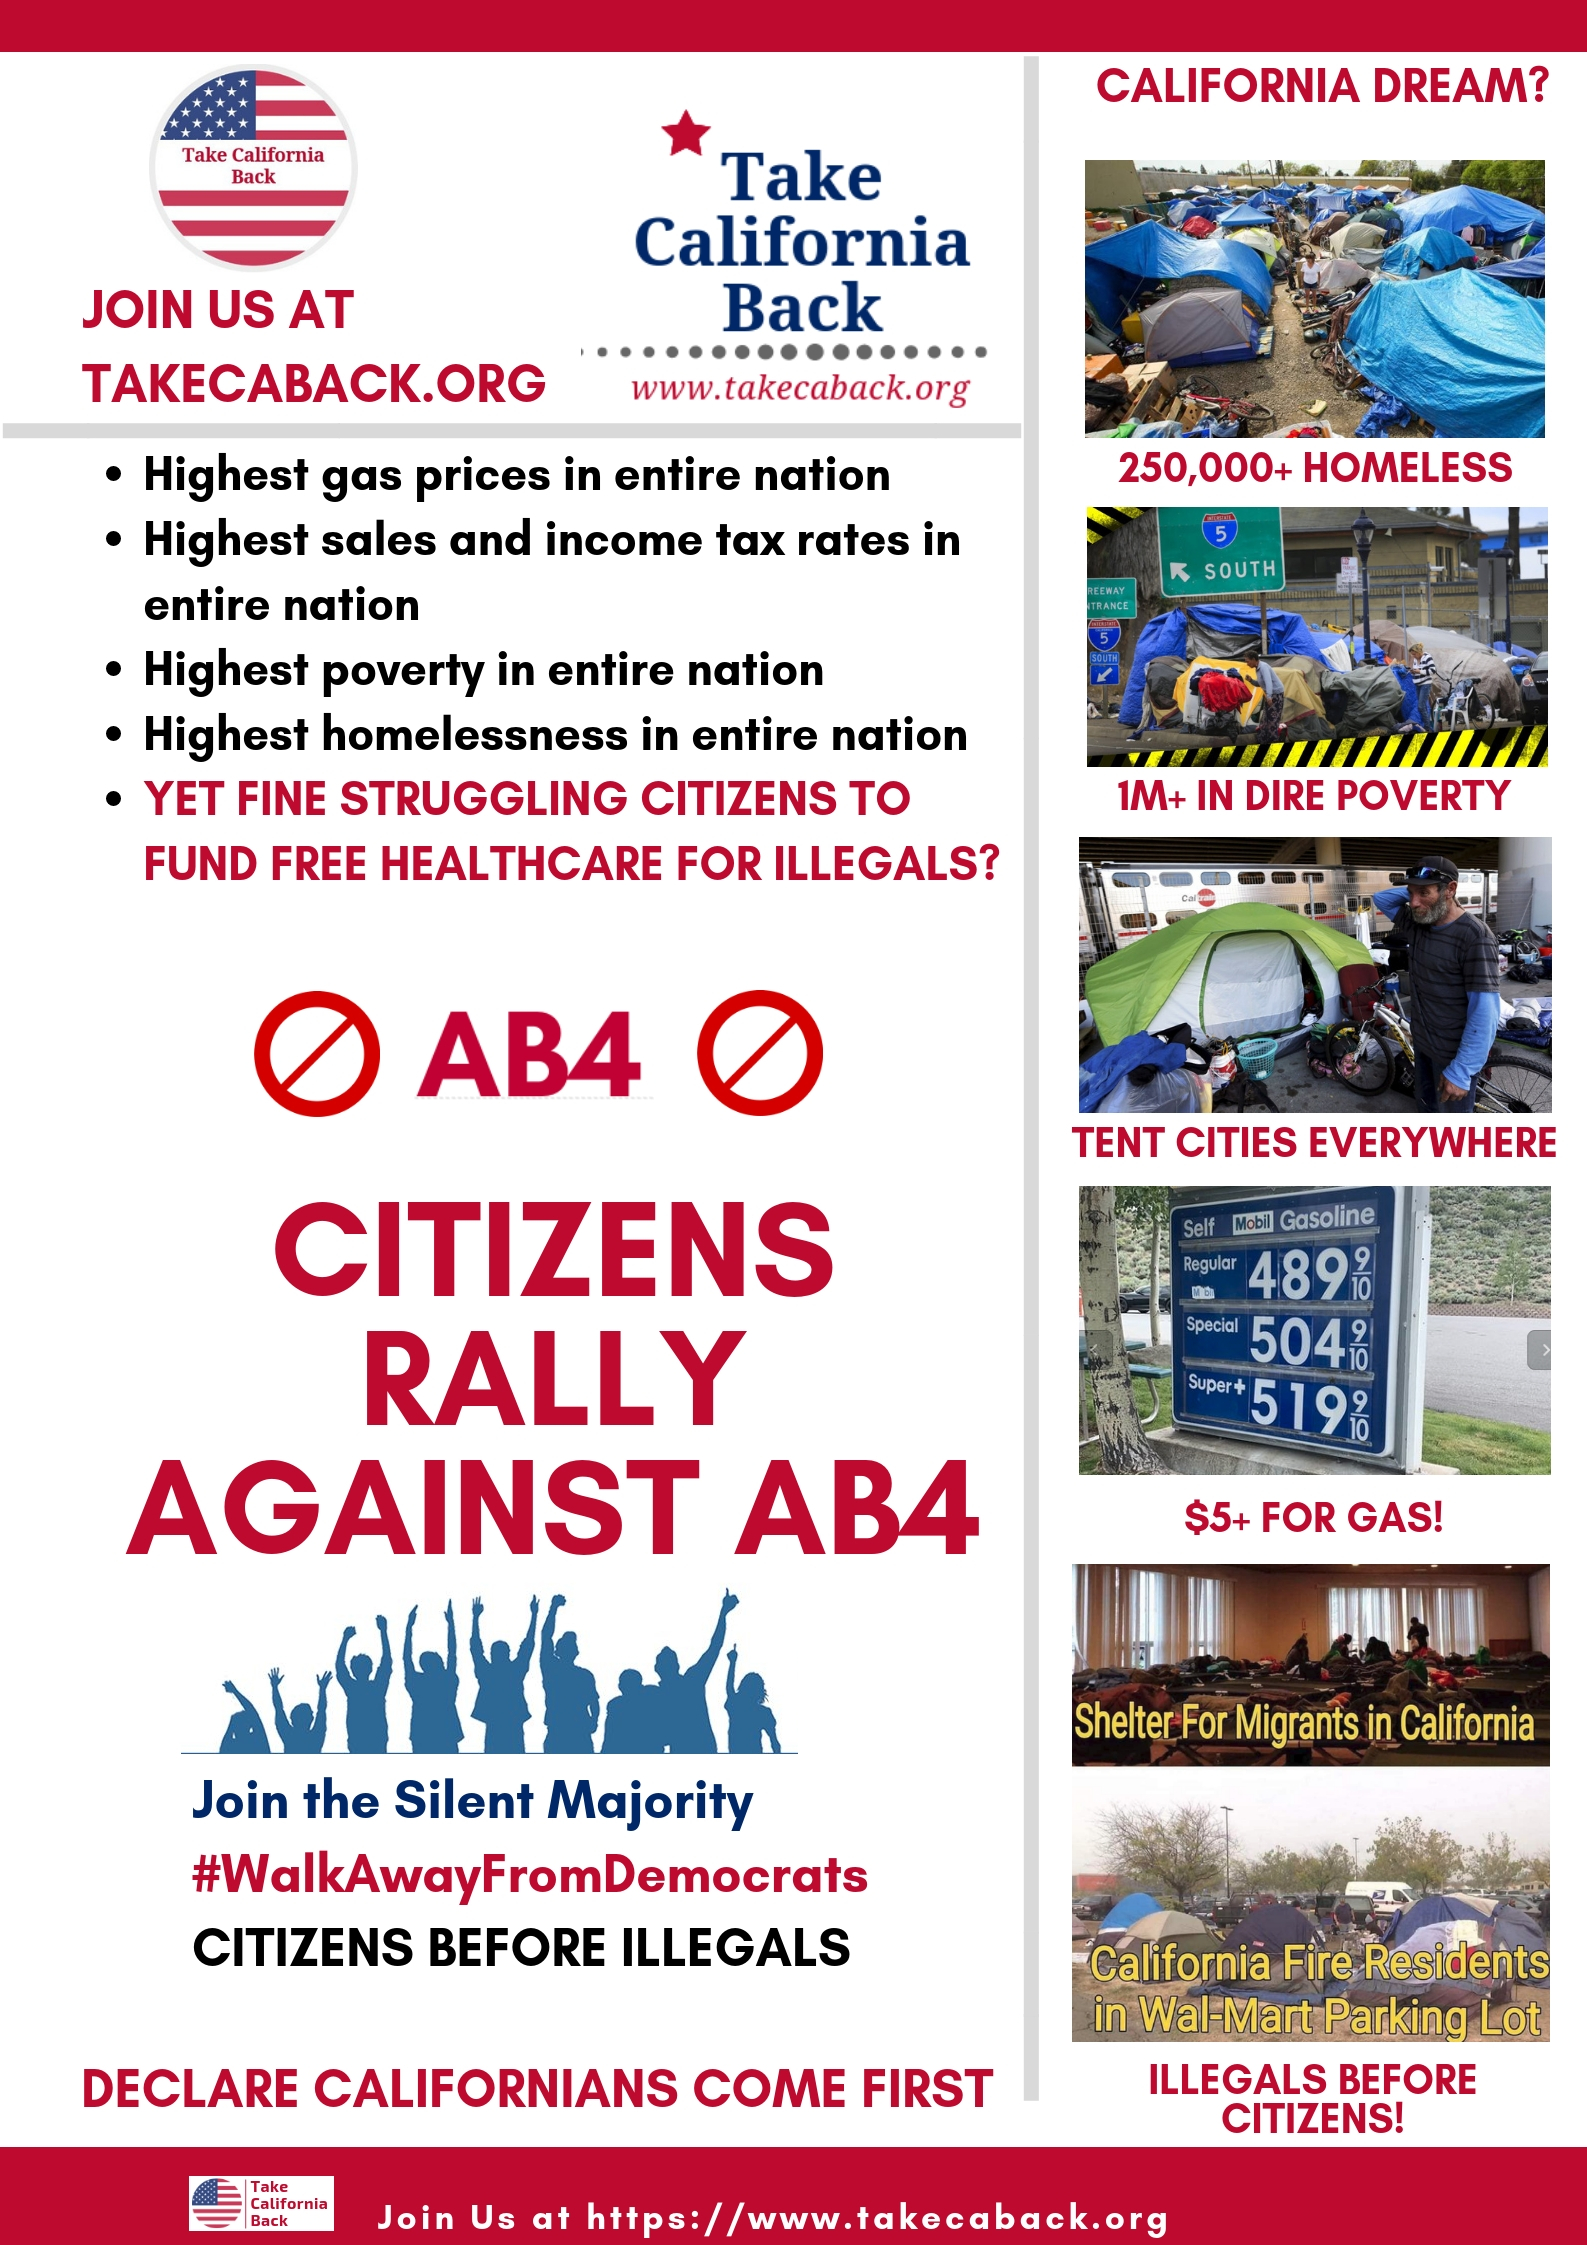 Citizens Against AB4 - Take California Back